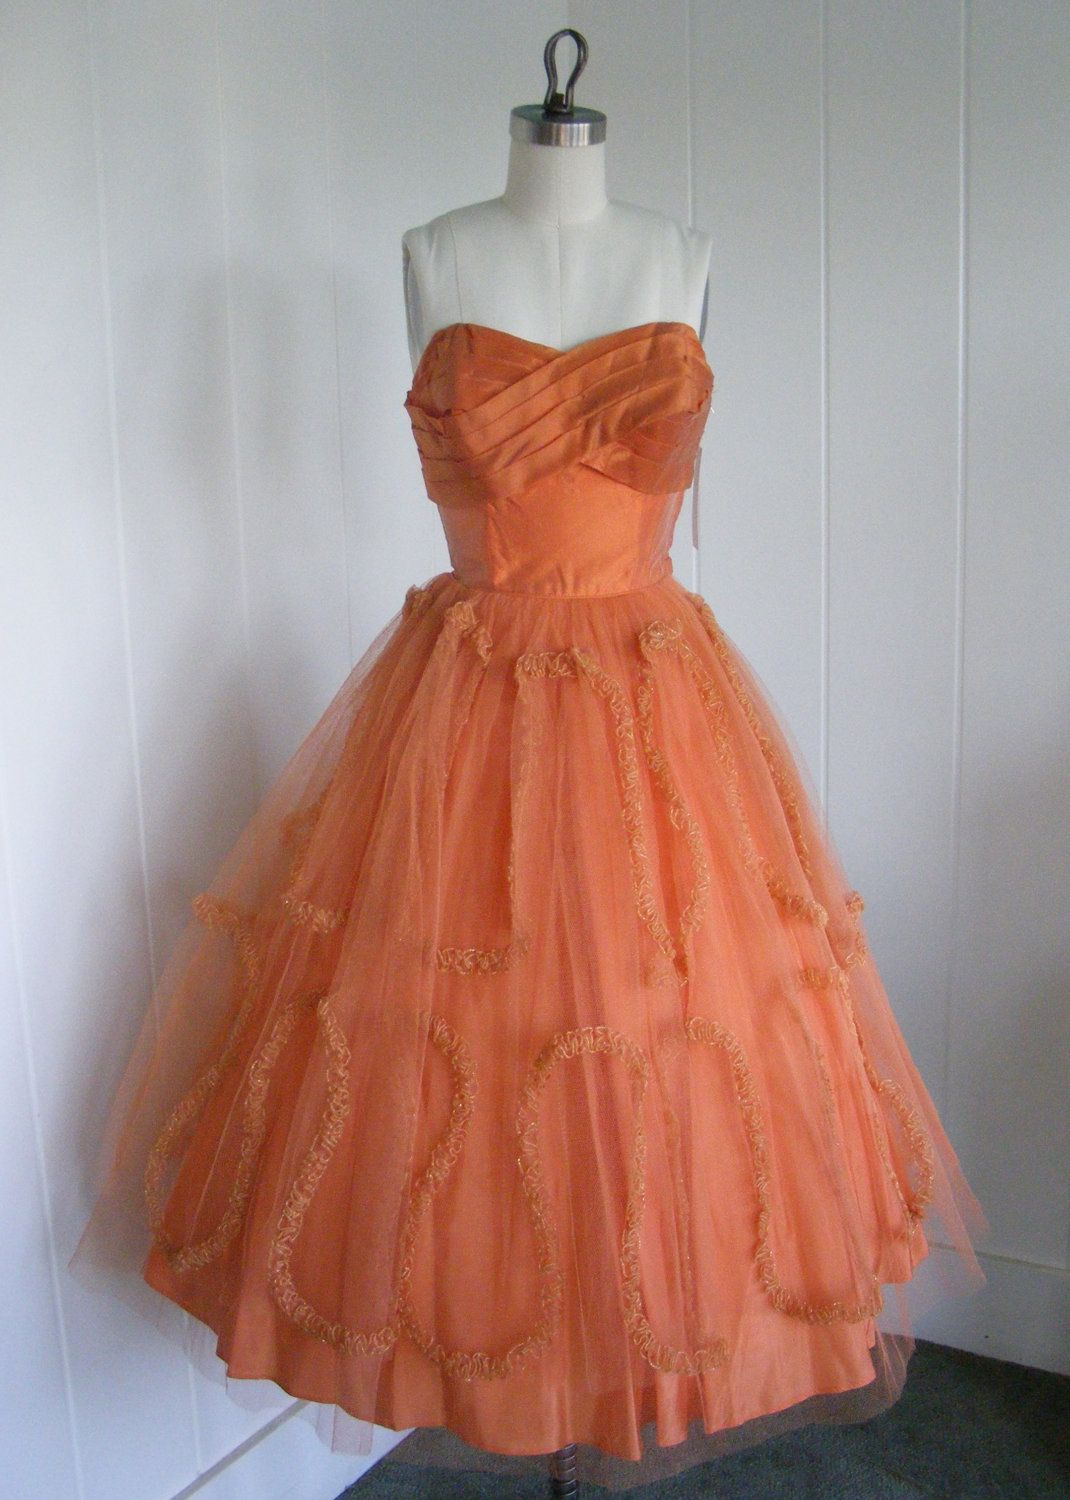 Pin By Hayley Krischer On Clothes And Accessories Orange Prom Dresses Vintage Dresses Prom Dresses Vintage [ 1500 x 1070 Pixel ]